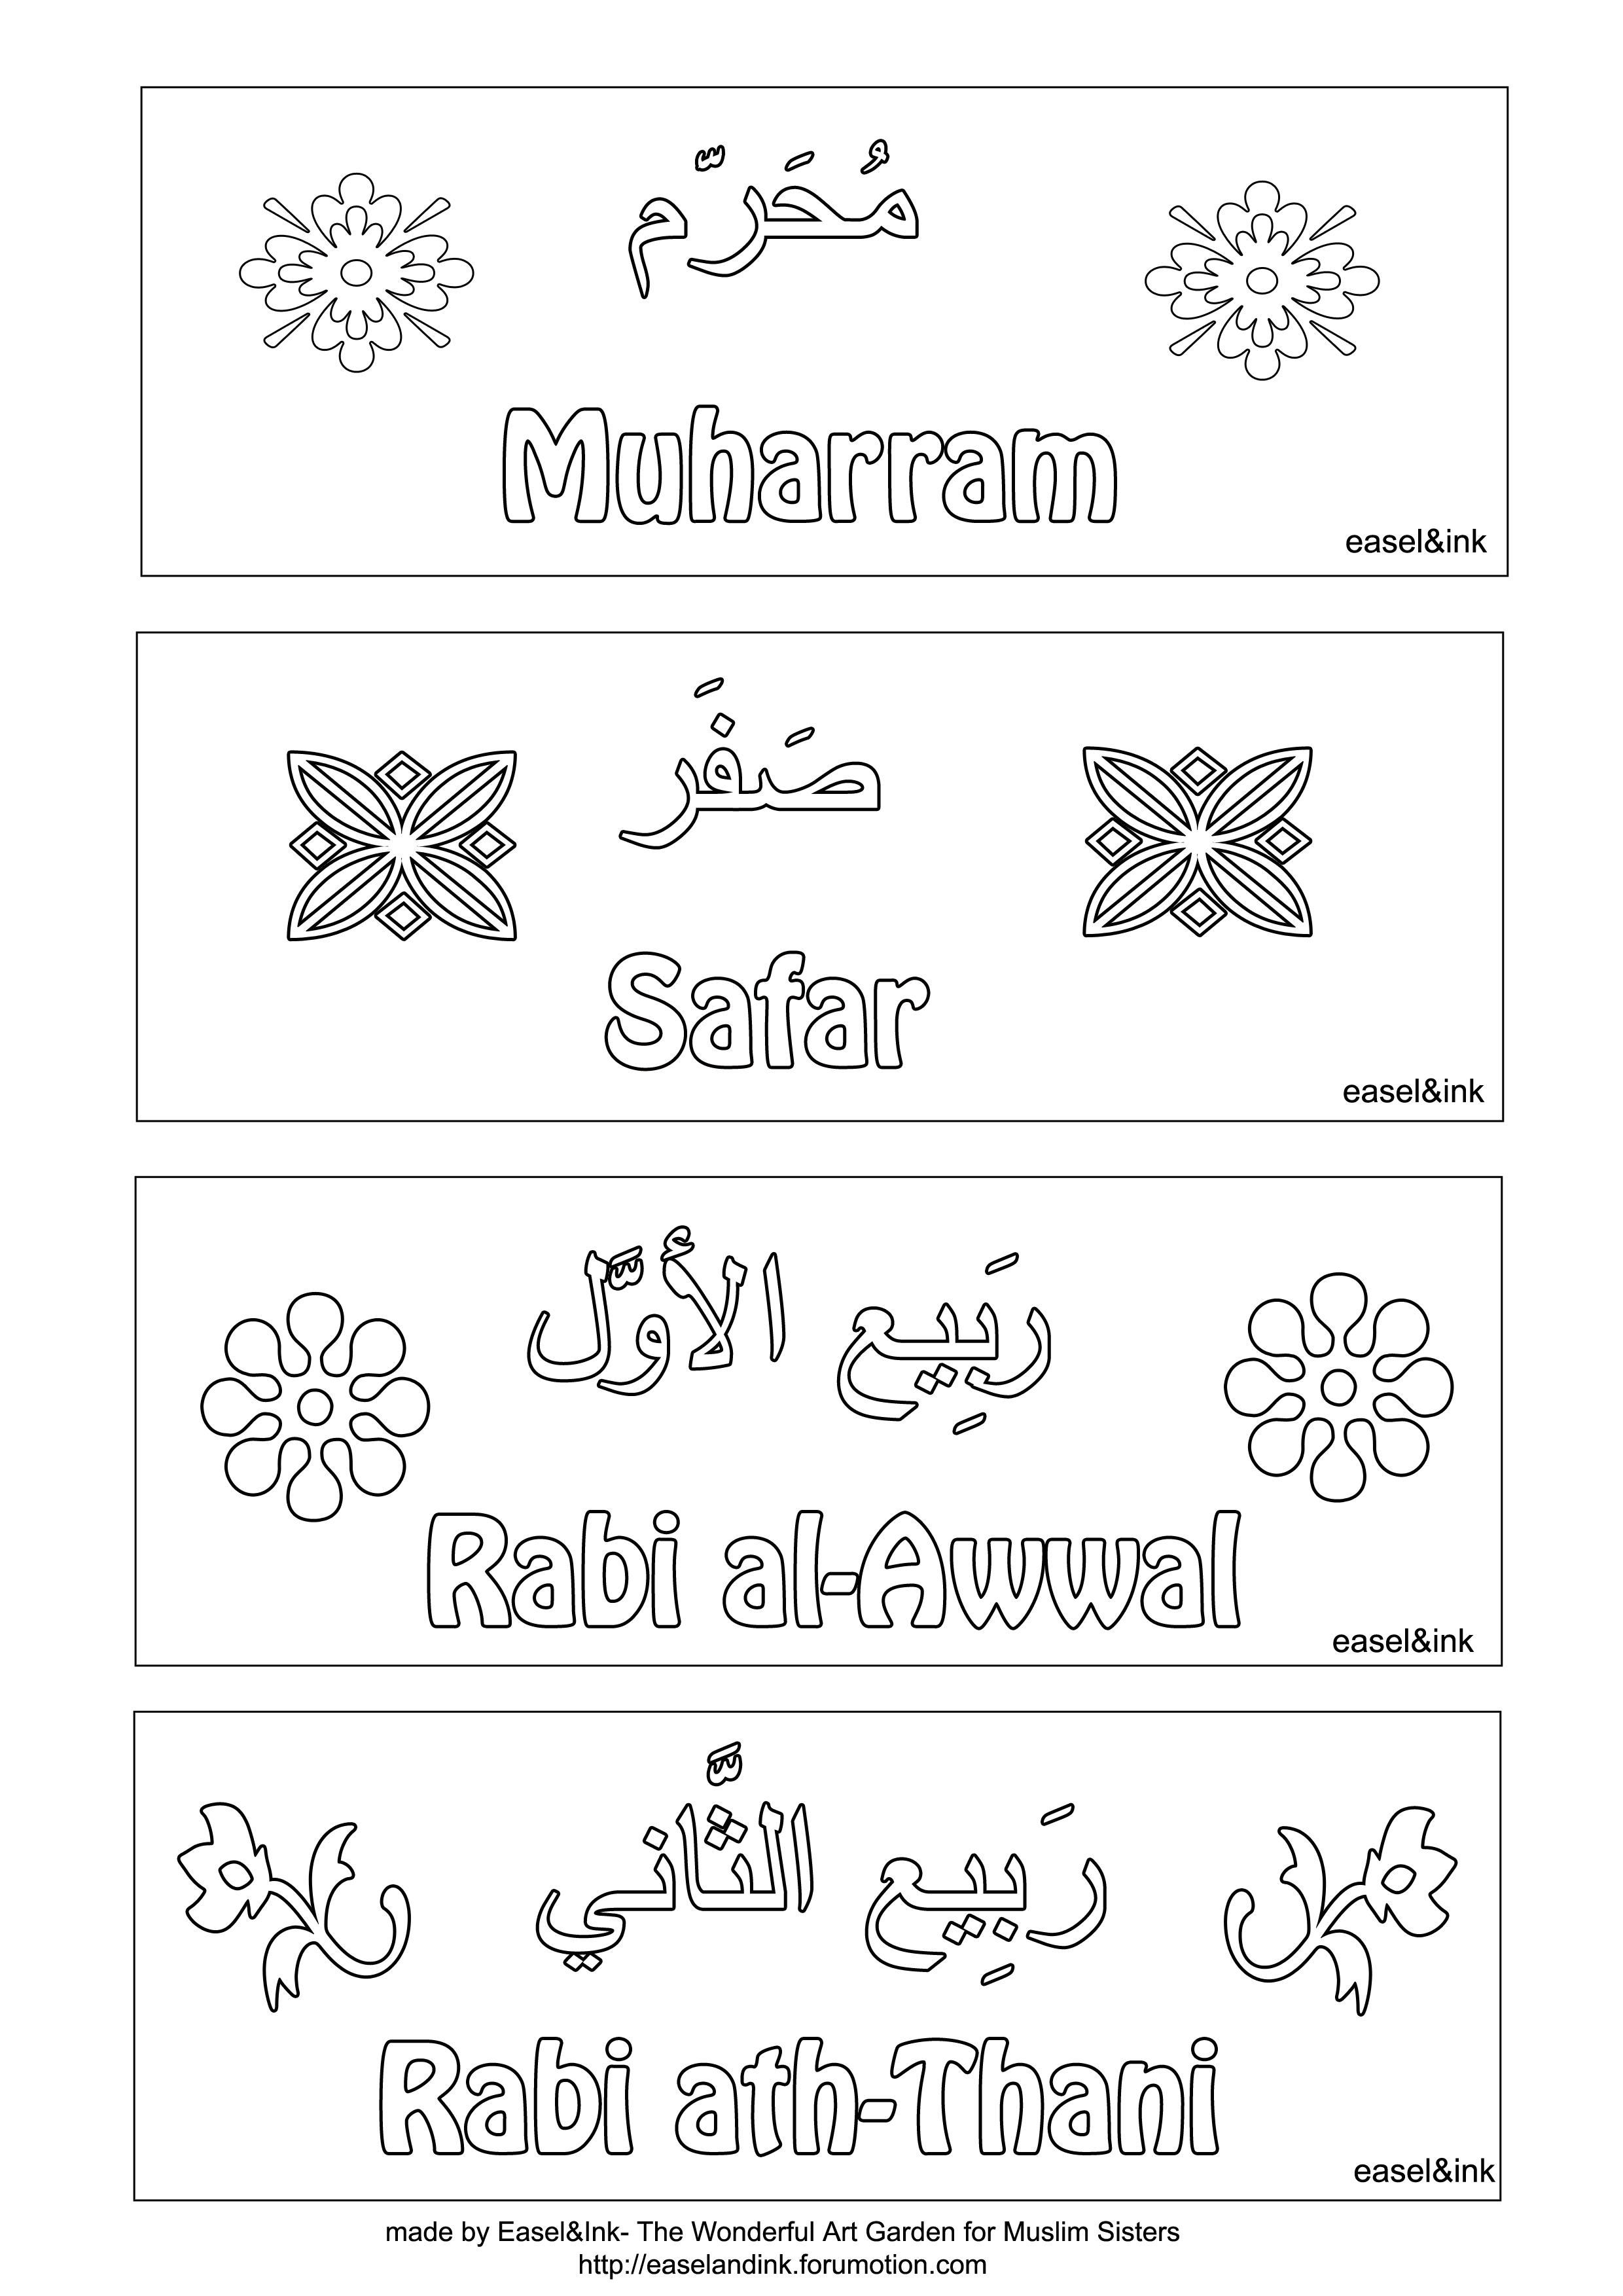 Eid colouring in sheets - 17 Best Images About Kiddies On Pinterest Coloring Books Eid And Muslim Ramadan